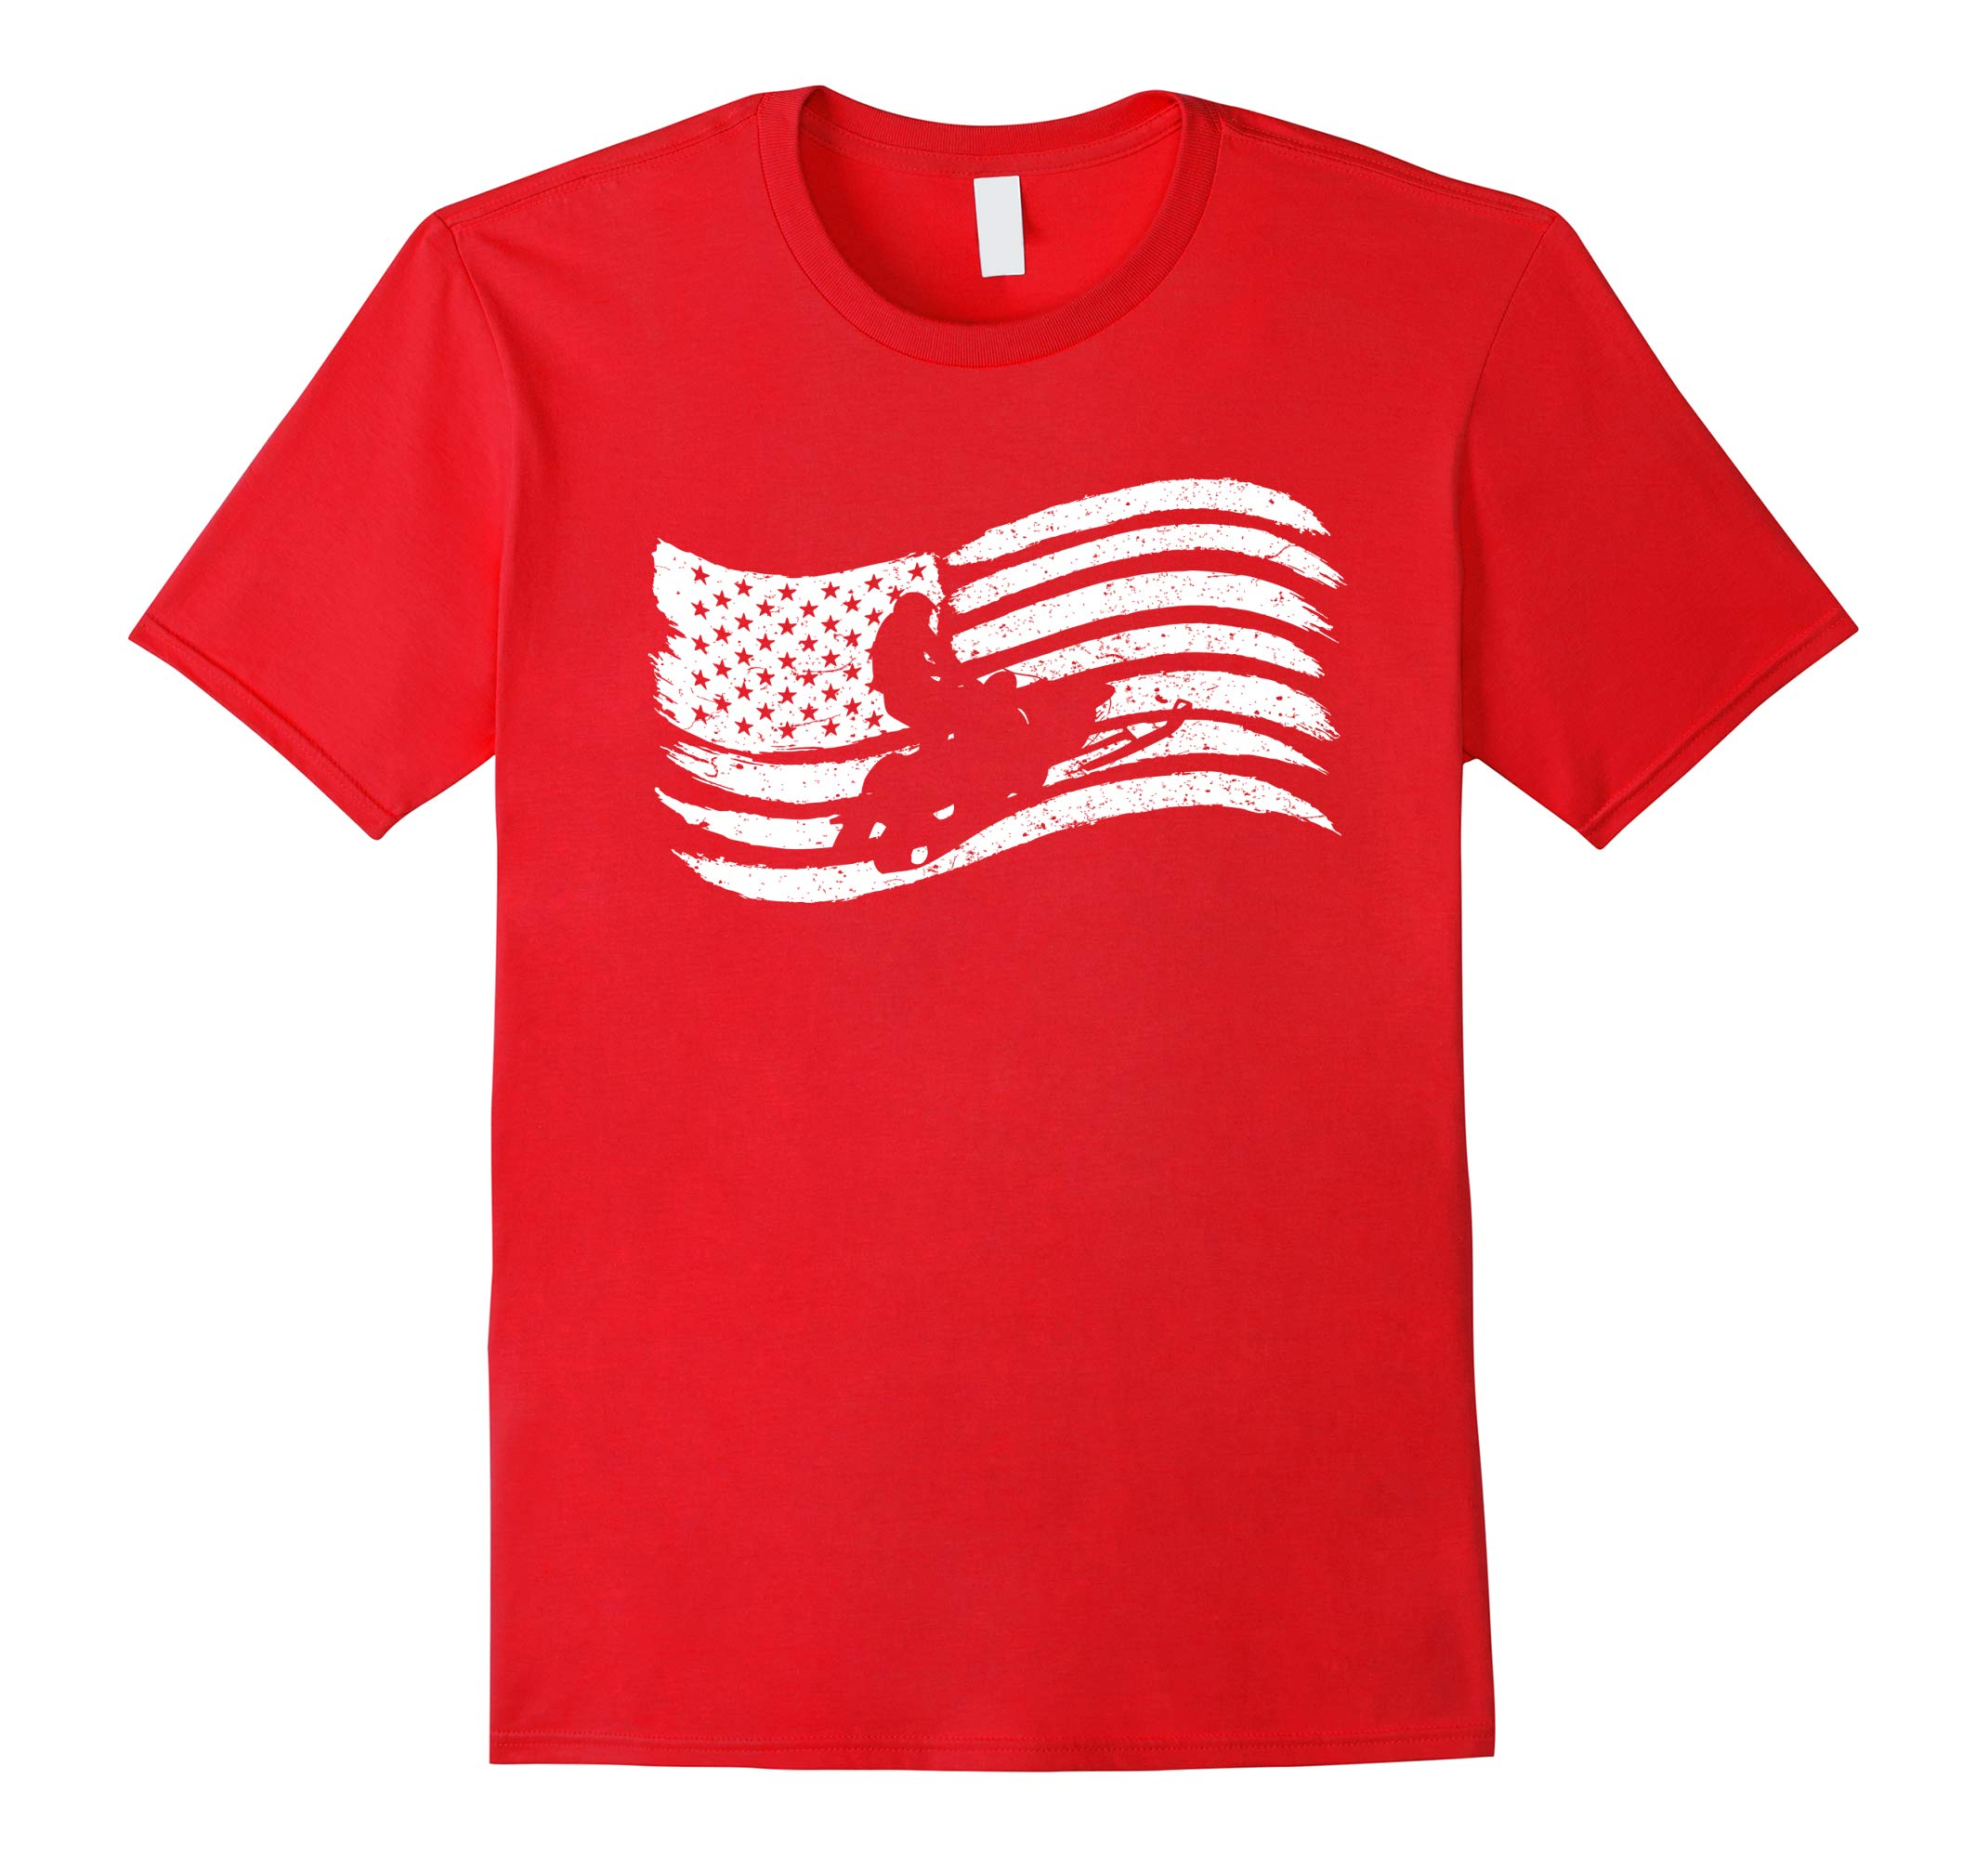 American Flag T-Shirt For Snowmobile Rider Vintage Look-RT